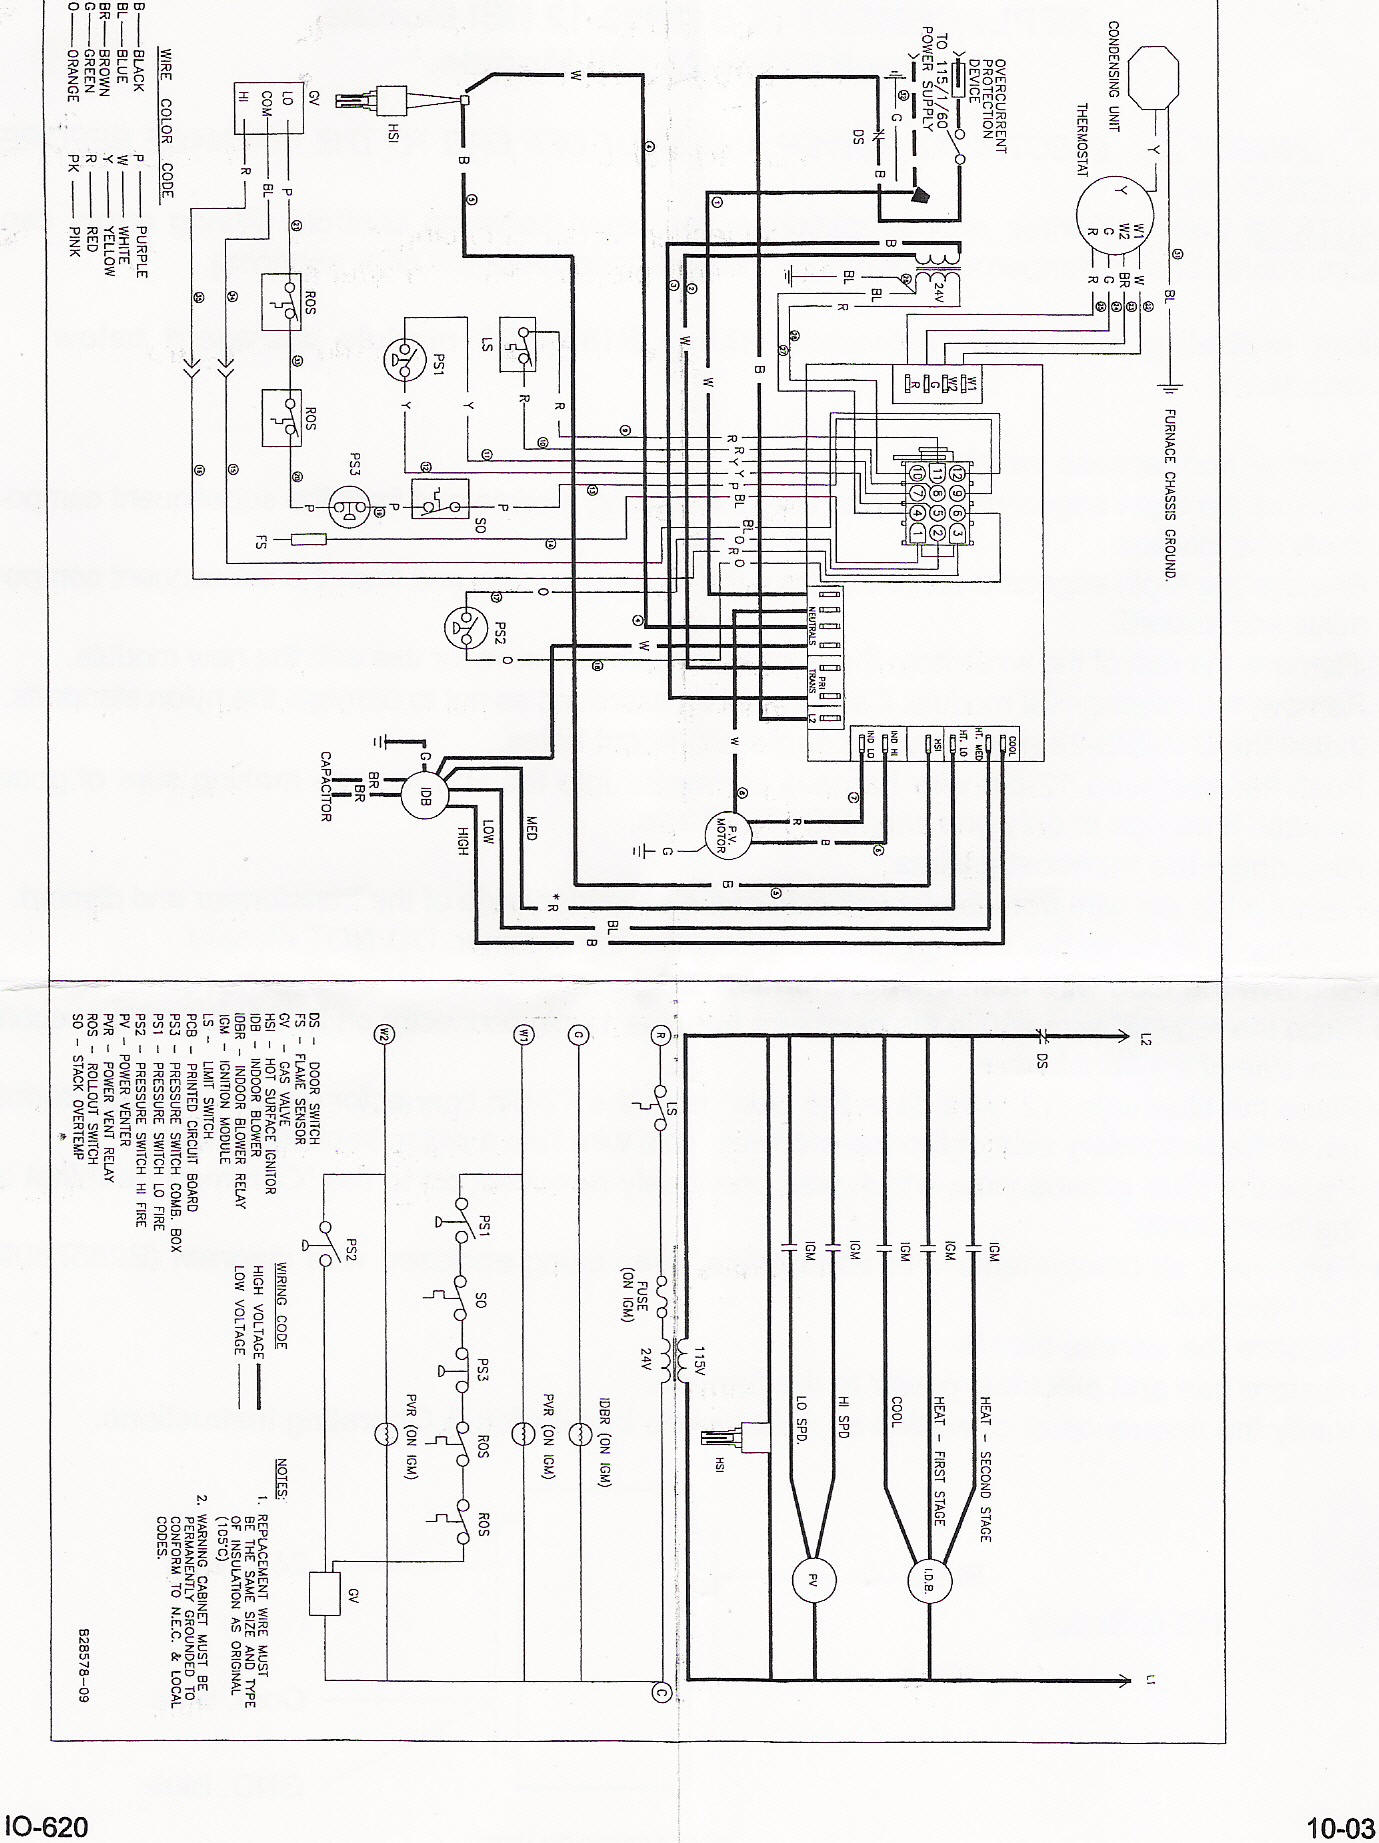 goodma2 instr goodman control board b18099 23 instructions trane voyager wiring diagram at reclaimingppi.co